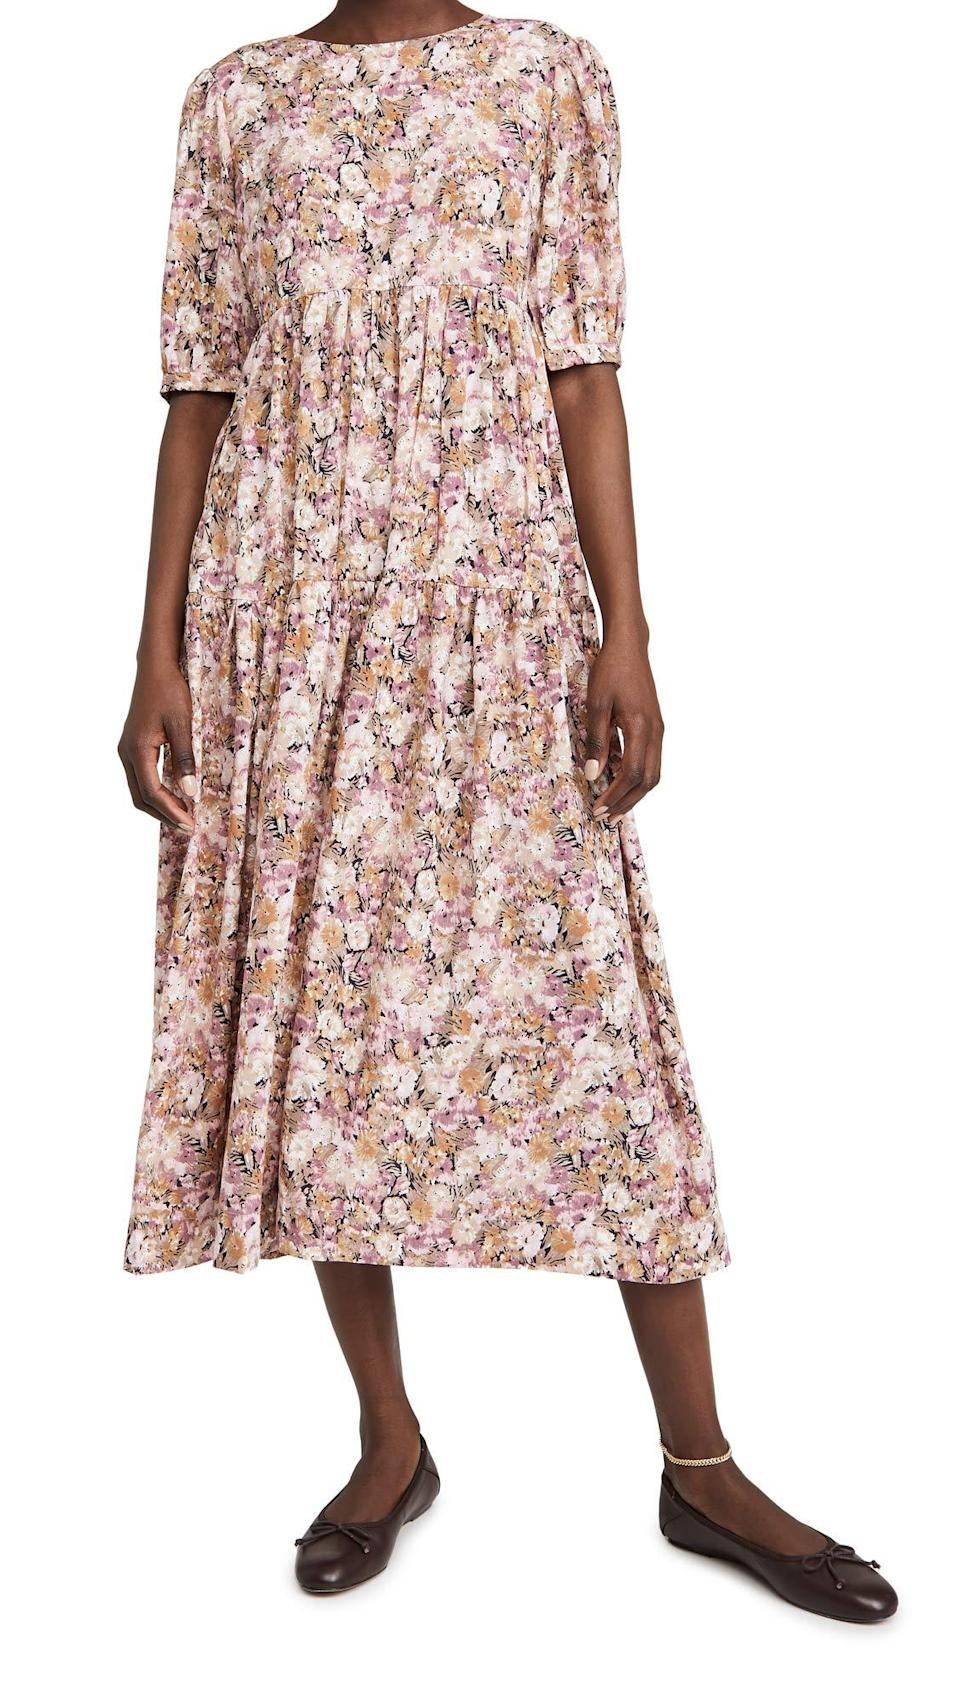 """<br><br><strong>En Saison</strong> Floral Tiered Midi Dress, $, available at <a href=""""https://amzn.to/3yCNigd"""" rel=""""nofollow noopener"""" target=""""_blank"""" data-ylk=""""slk:Amazon"""" class=""""link rapid-noclick-resp"""">Amazon</a>"""